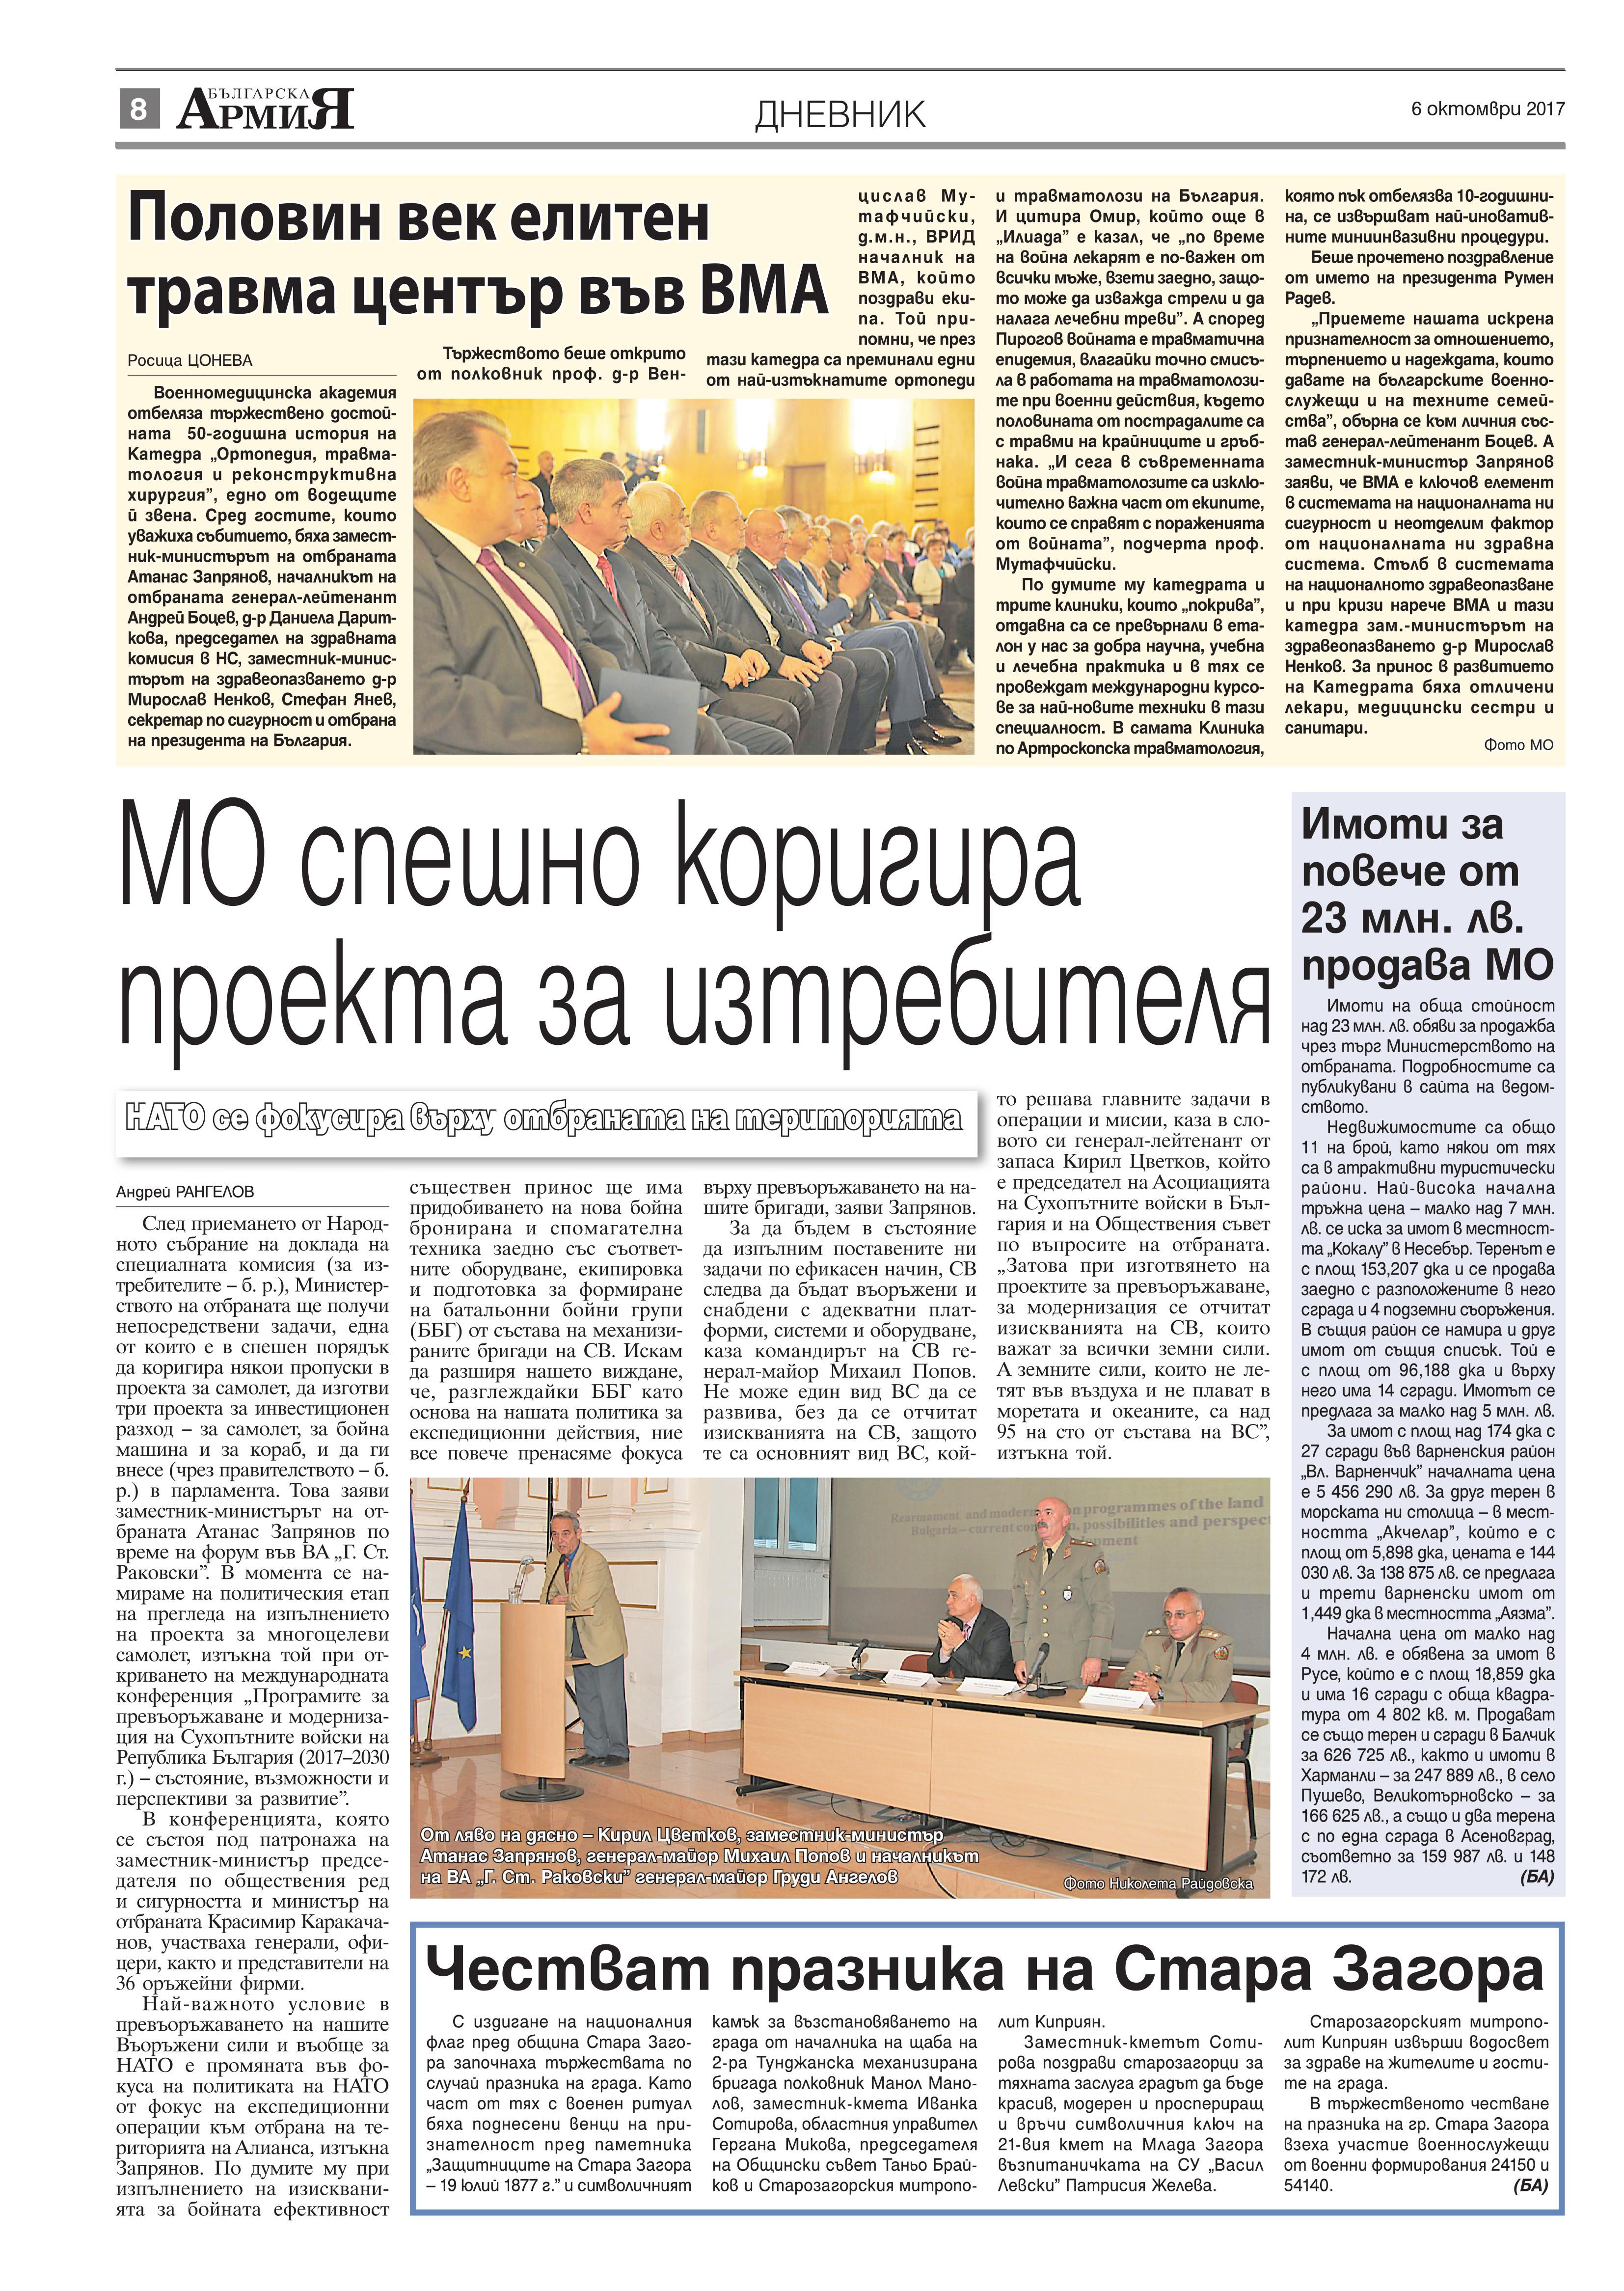 http://armymedia.bg/wp-content/uploads/2015/06/08.page1_-31.jpg